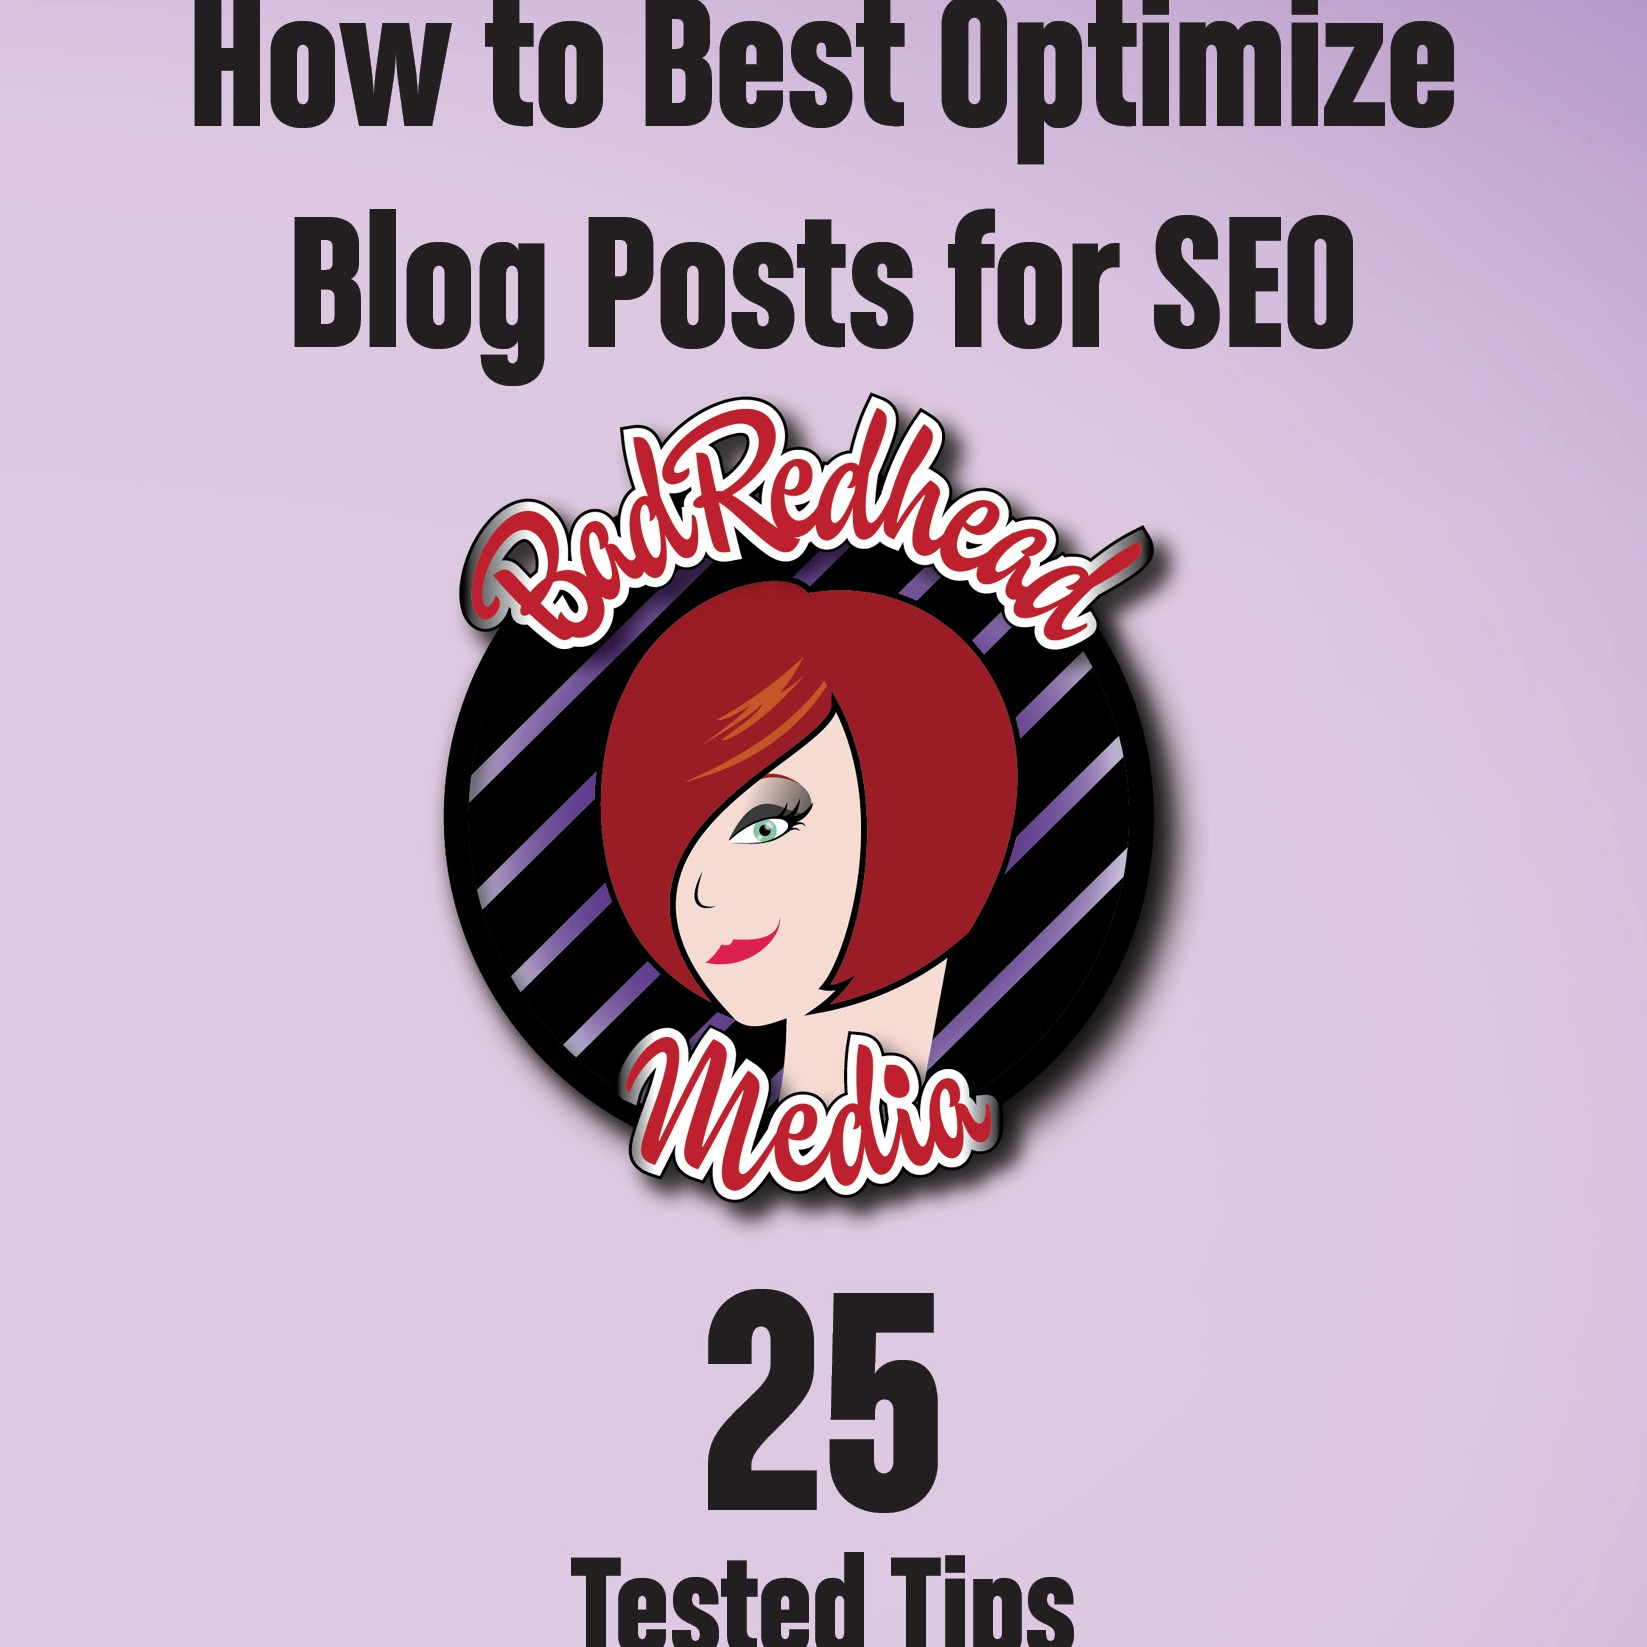 How to Optimize Your Blog Posts: SEO Tips